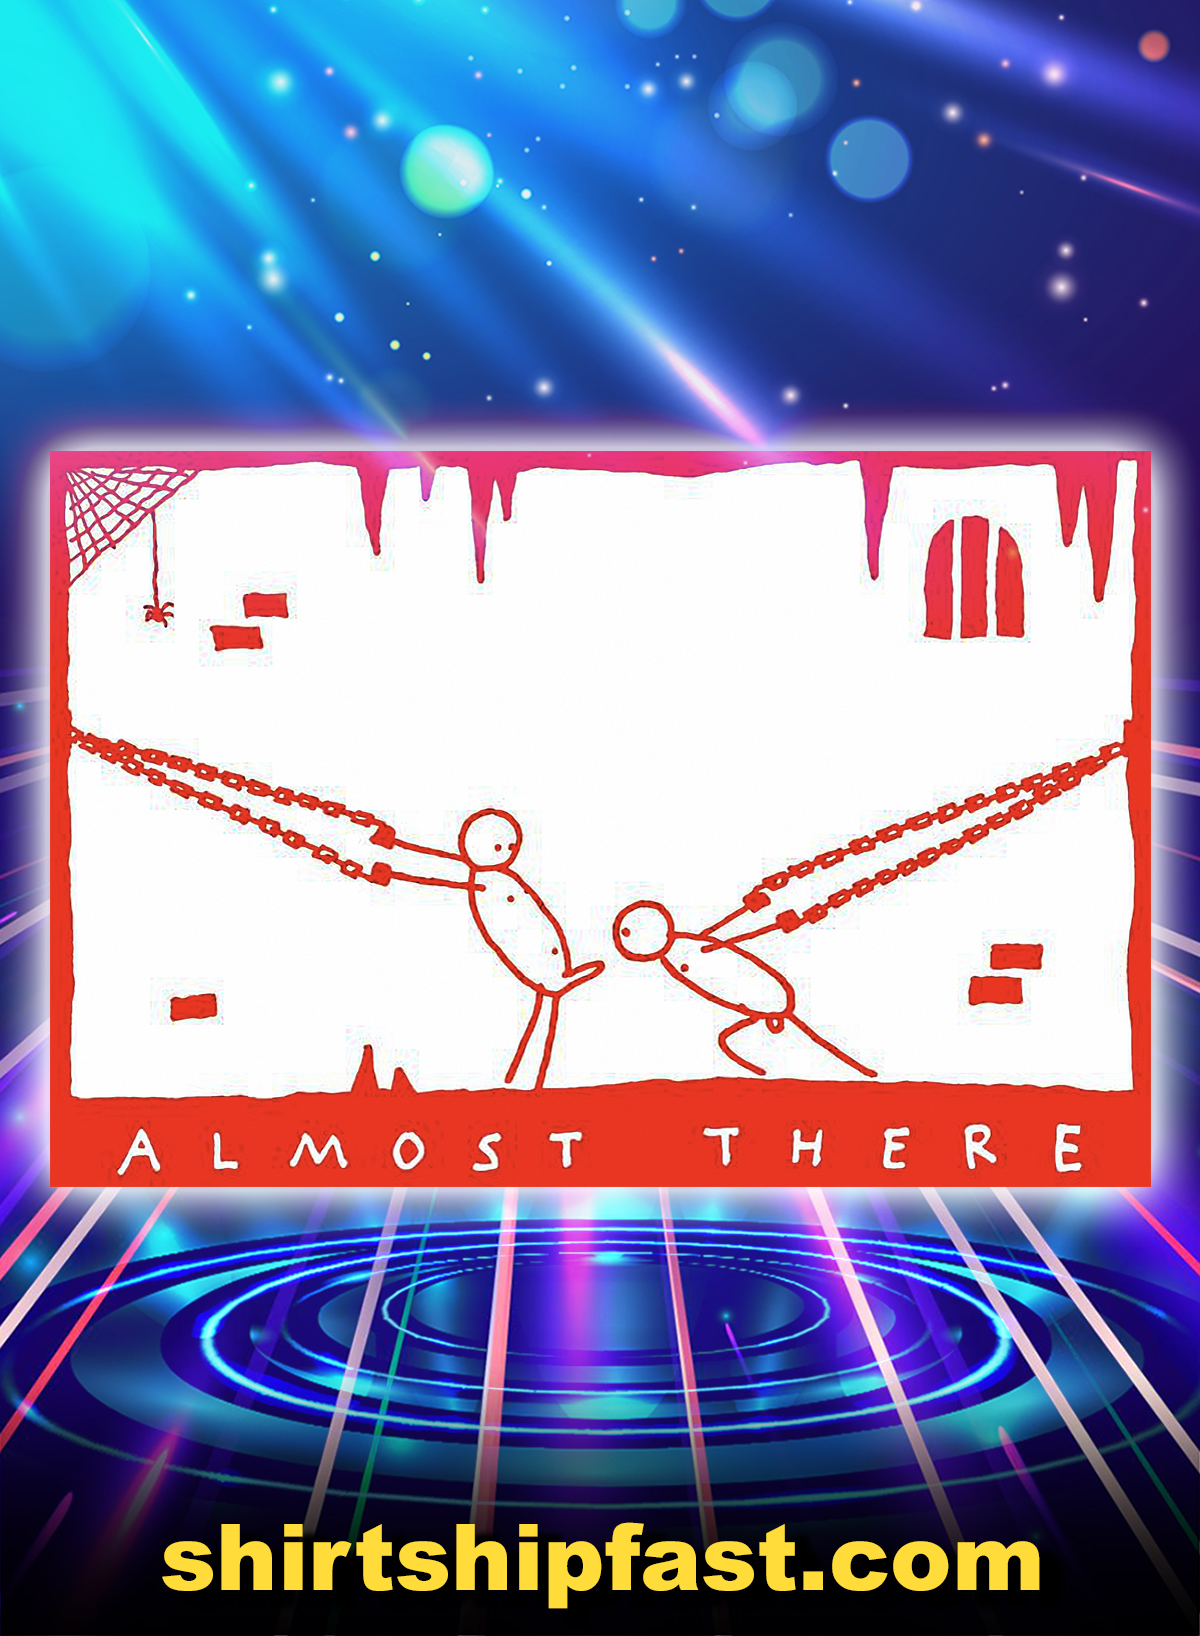 Almost there poster - Picture 3